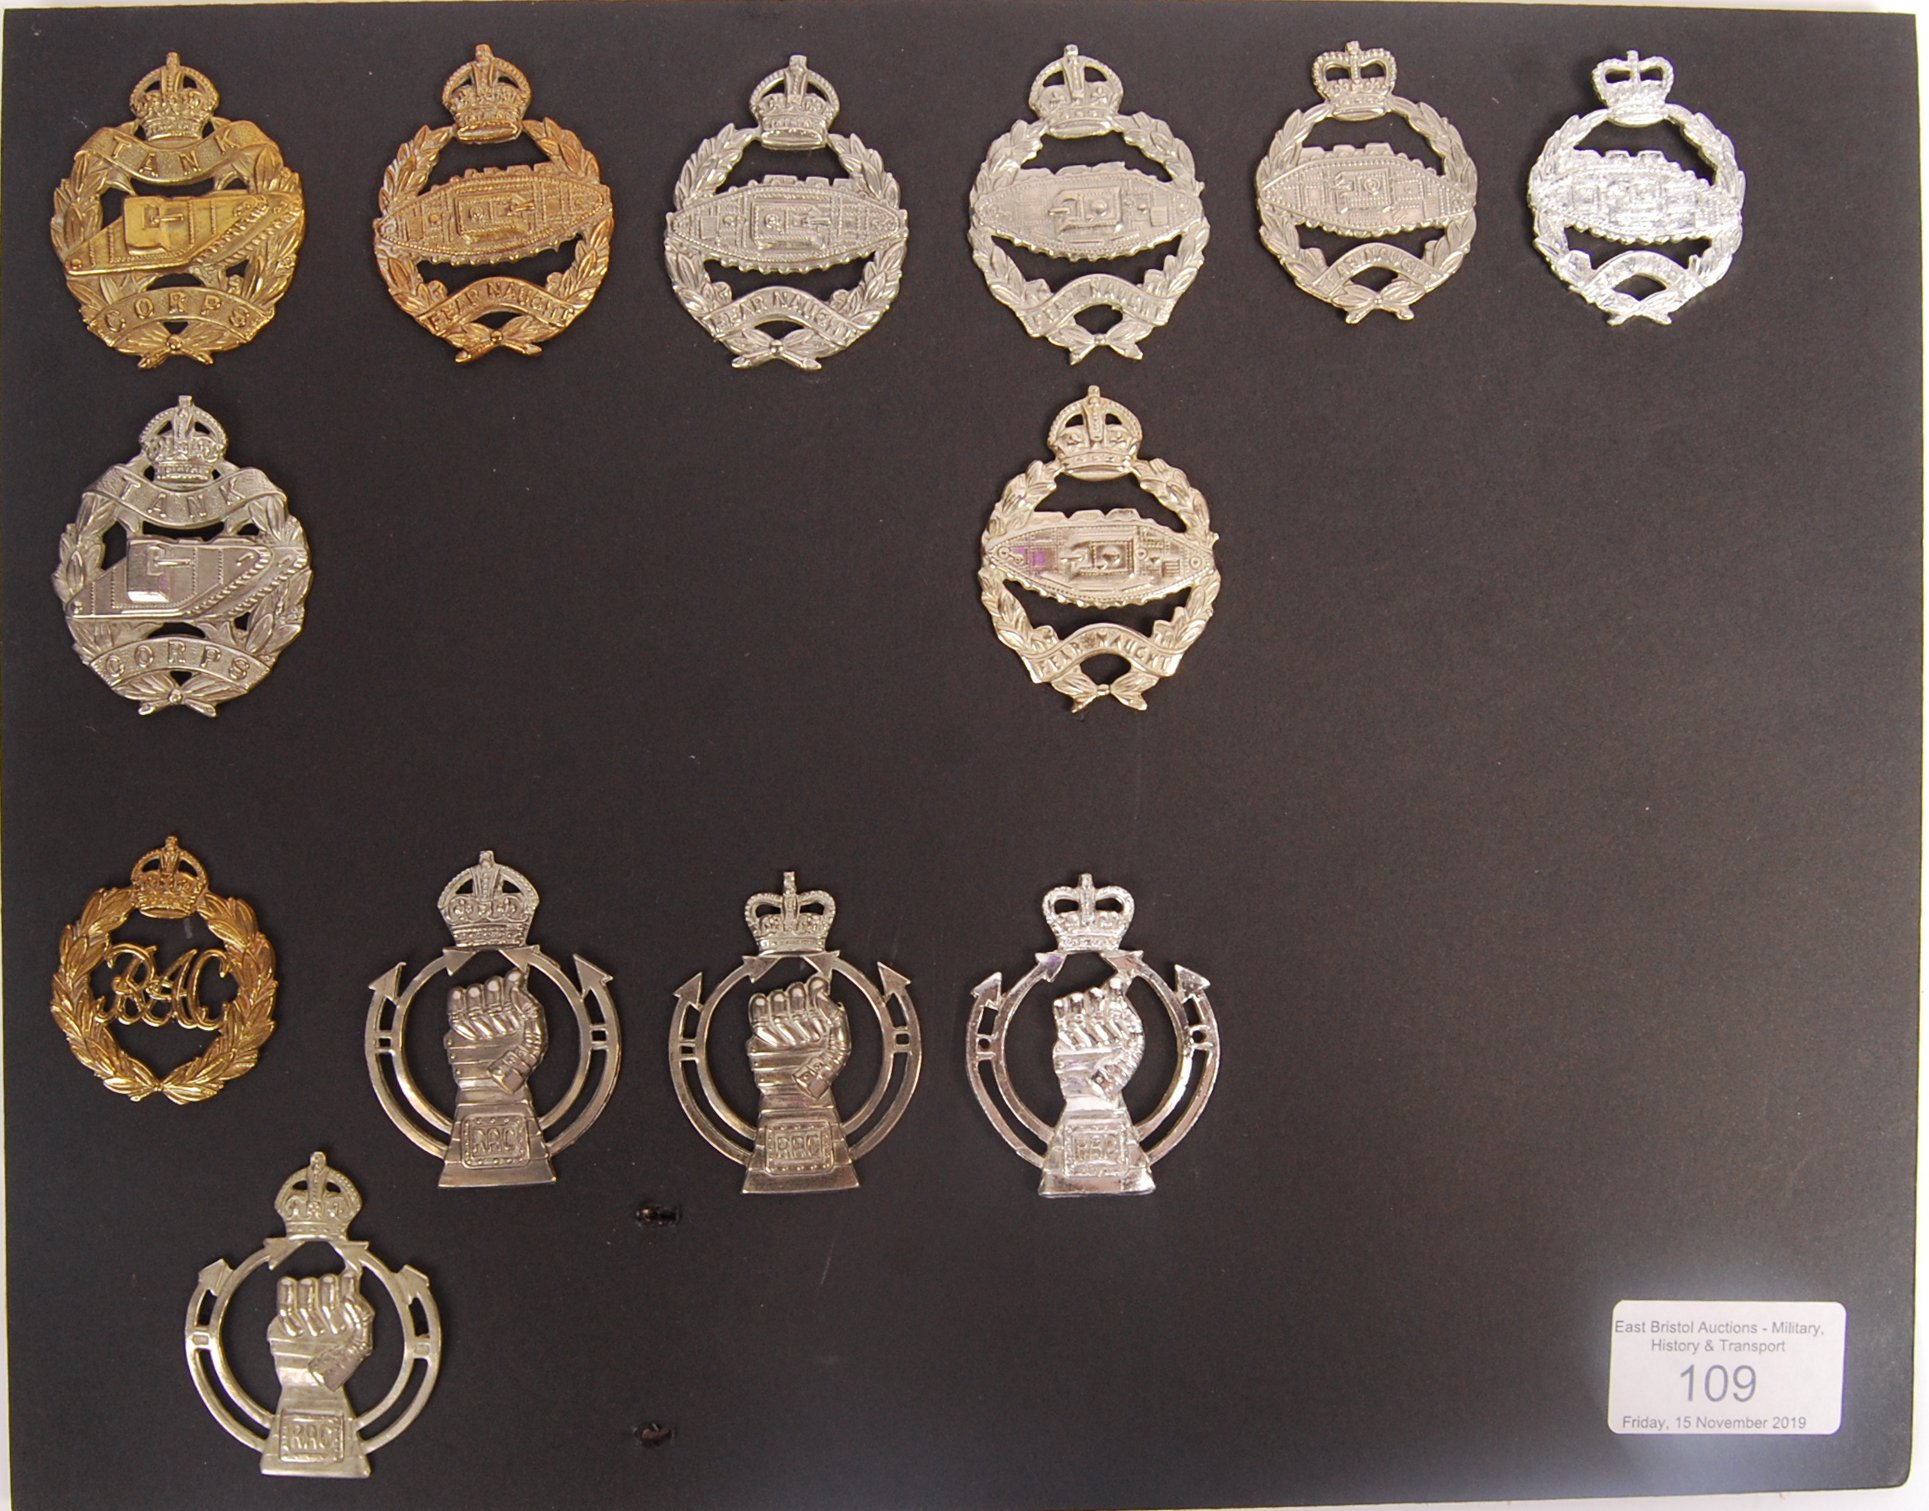 Lot 109 - COLLECTION OF WWI & LATER TANK CORPS & ROYAL ARMOU